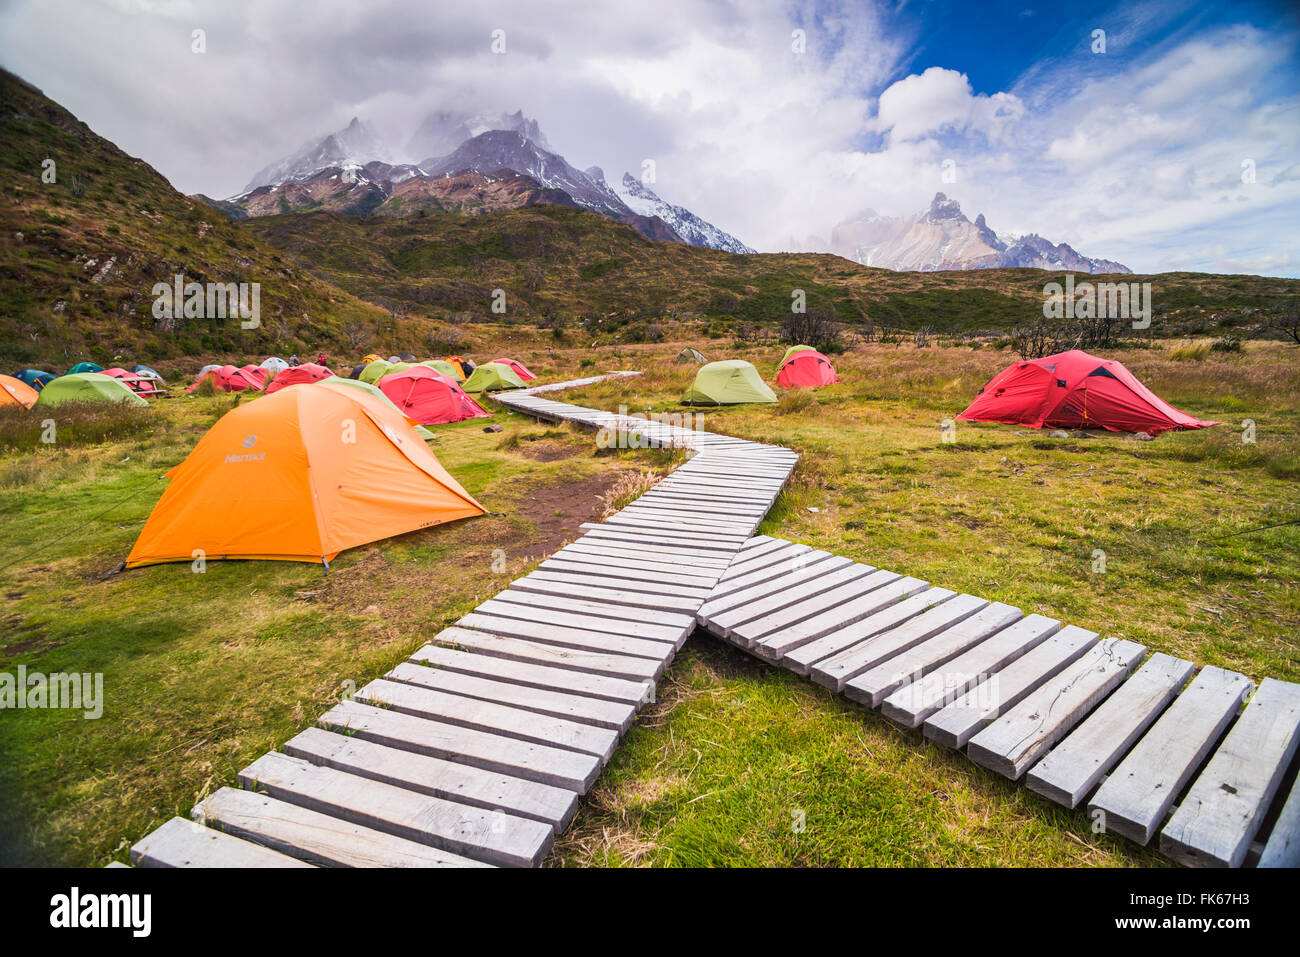 Camping in Torres del Paine National Park, Patagonia, Chile, South America - Stock Image